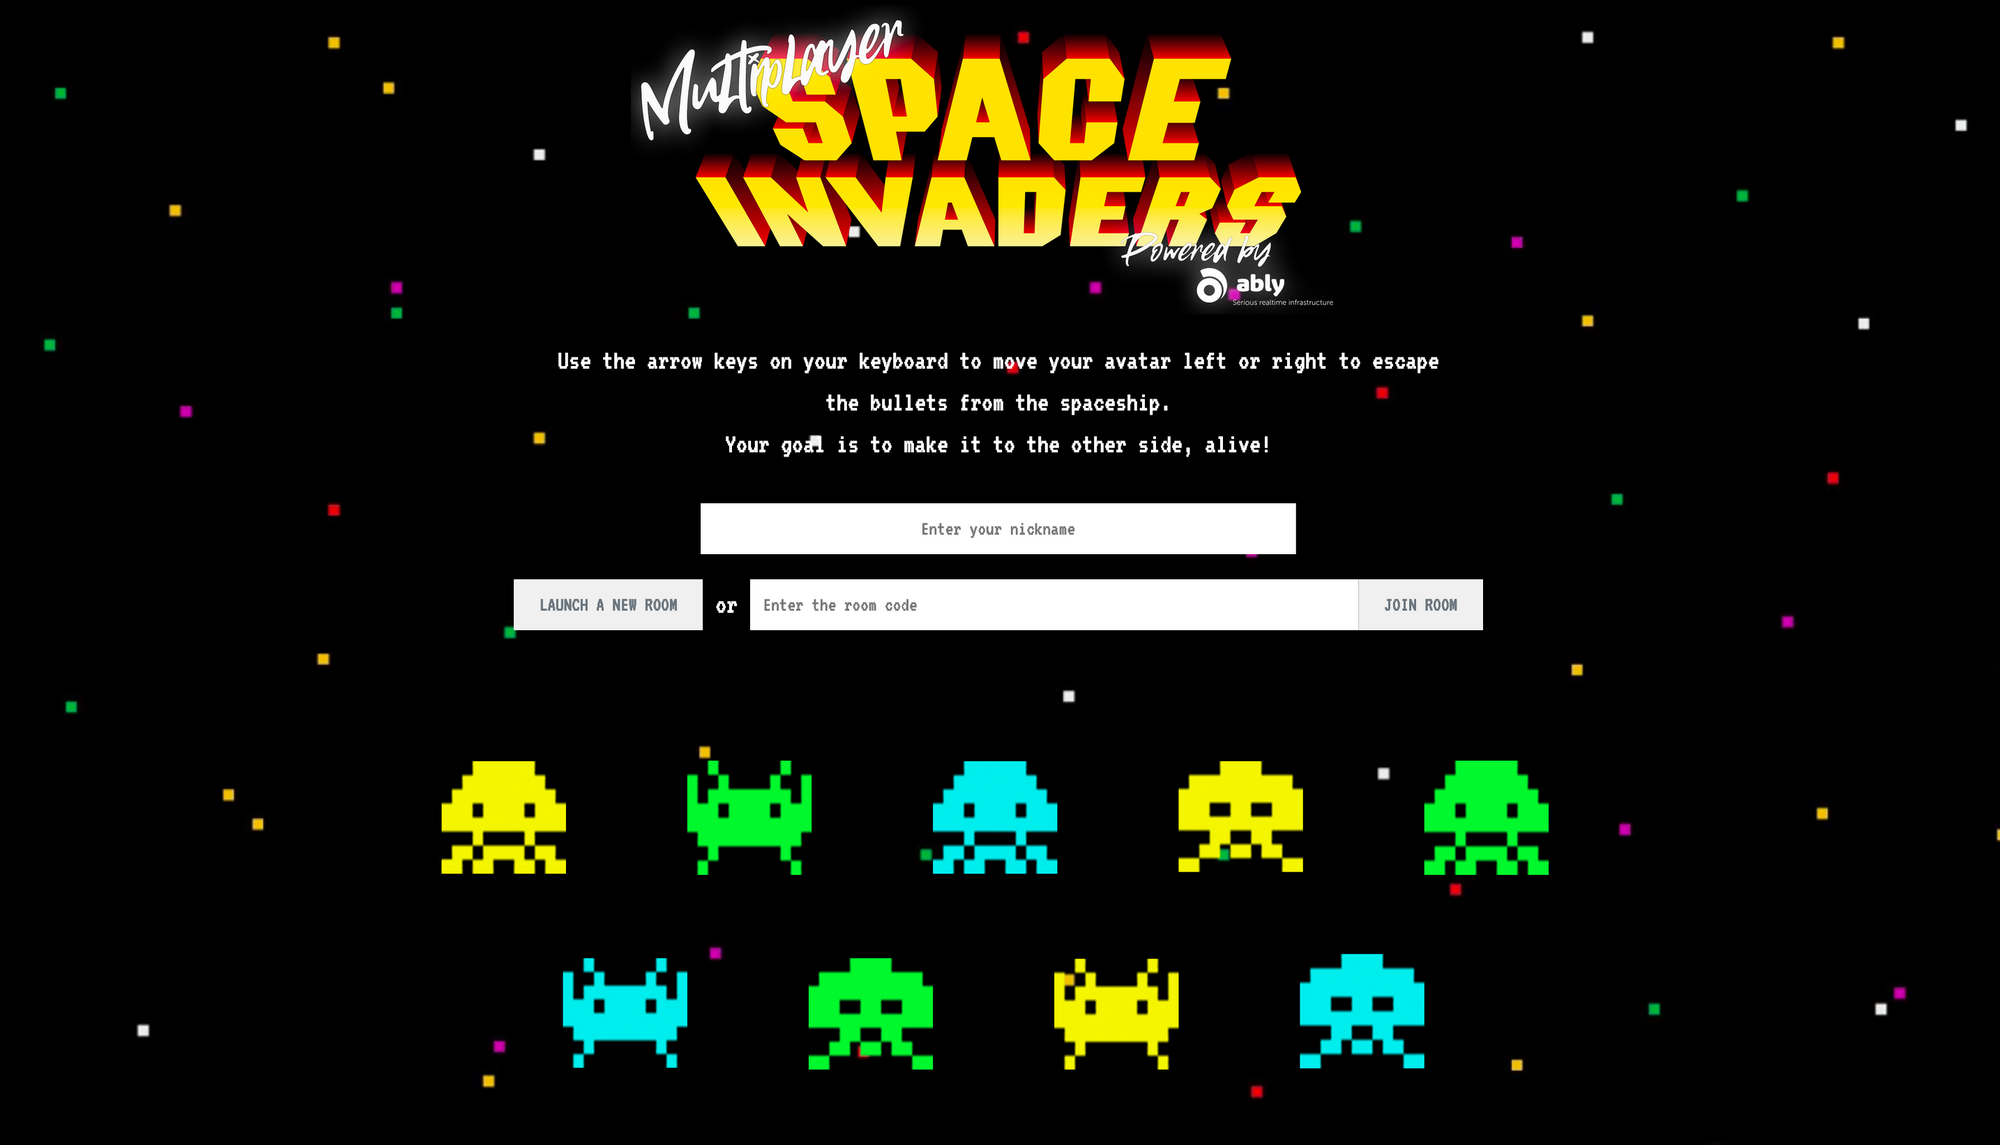 An image of the multiplayer Space Invaders game built over Websockets using Ably